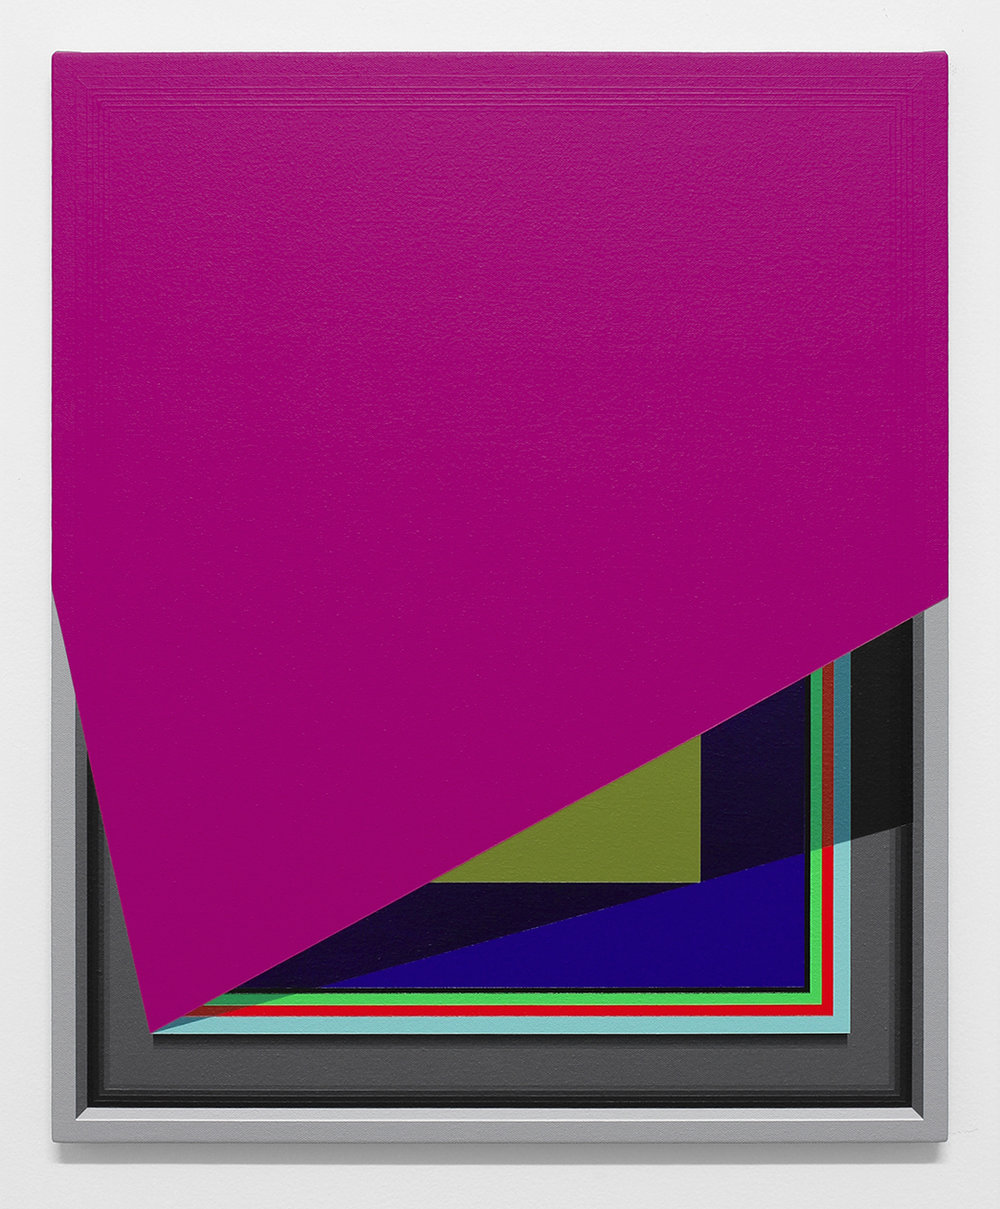 Severed Hue (Magenta/Red)   2013  Acrylic on canvas  22 x 18 inches  (55.88 x 45.72 cm)